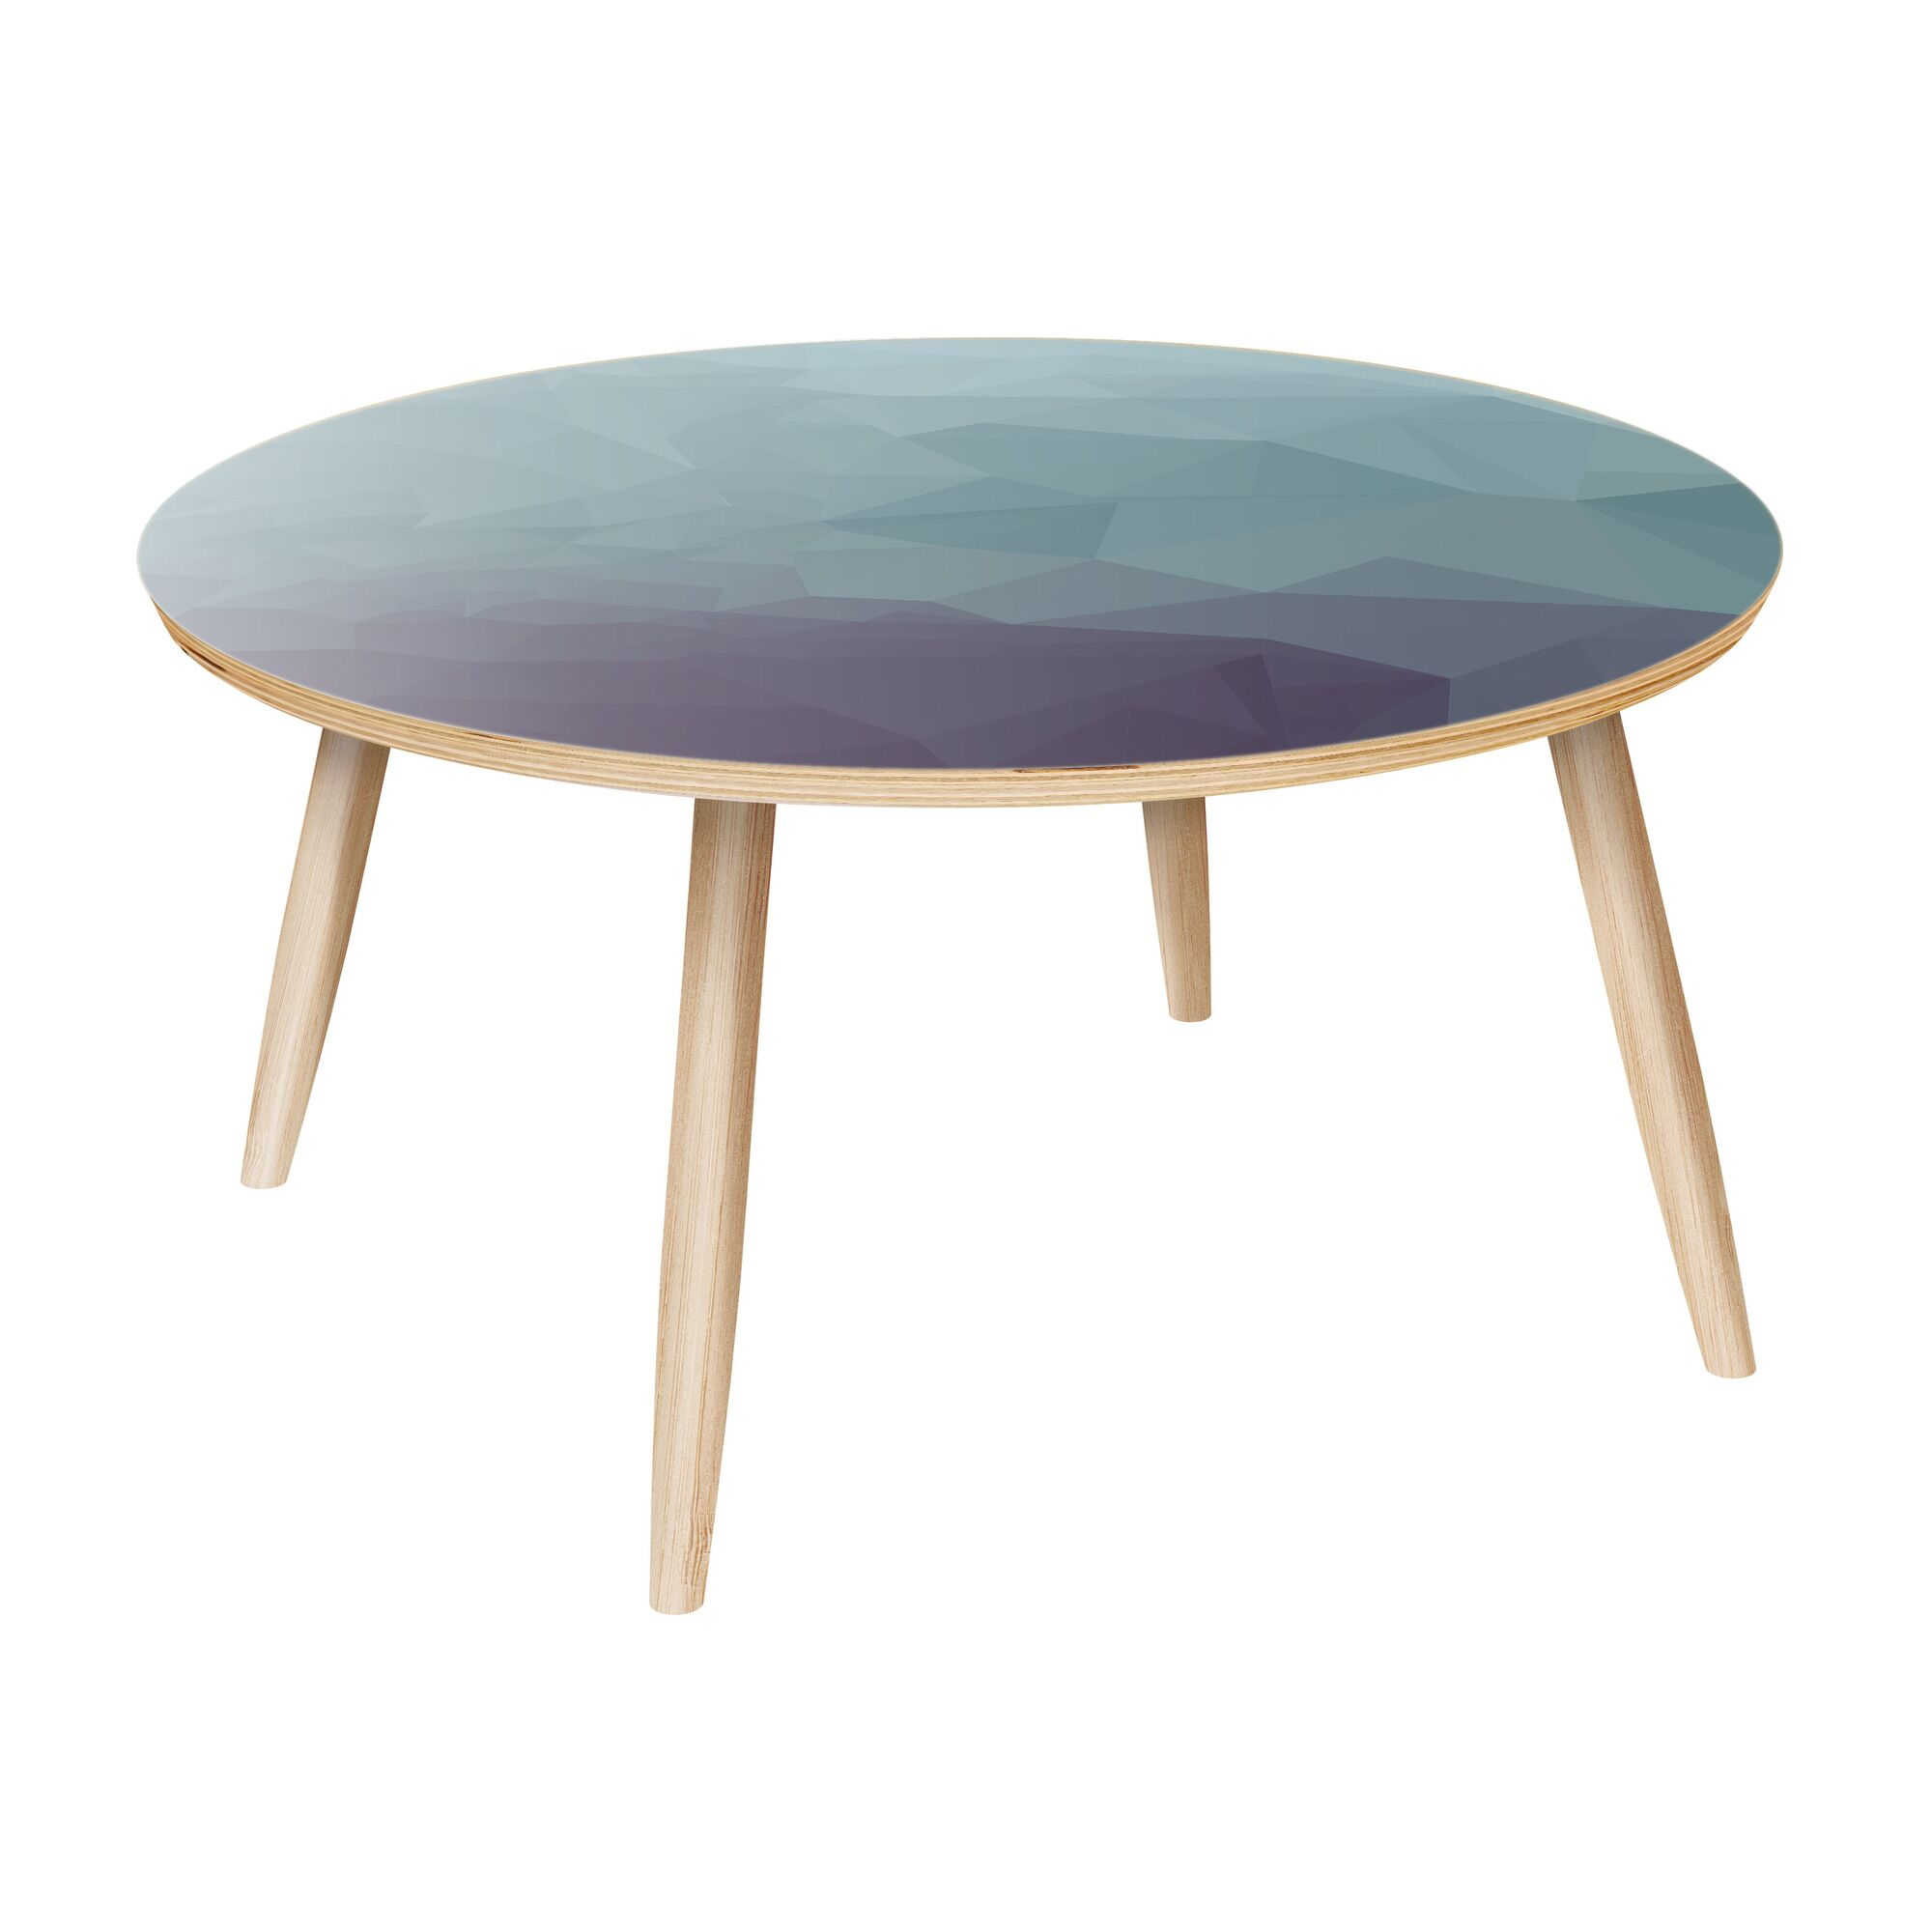 Lisieux Coffee Table Table Base Color: Natural, Table Top Color: Gray/Black